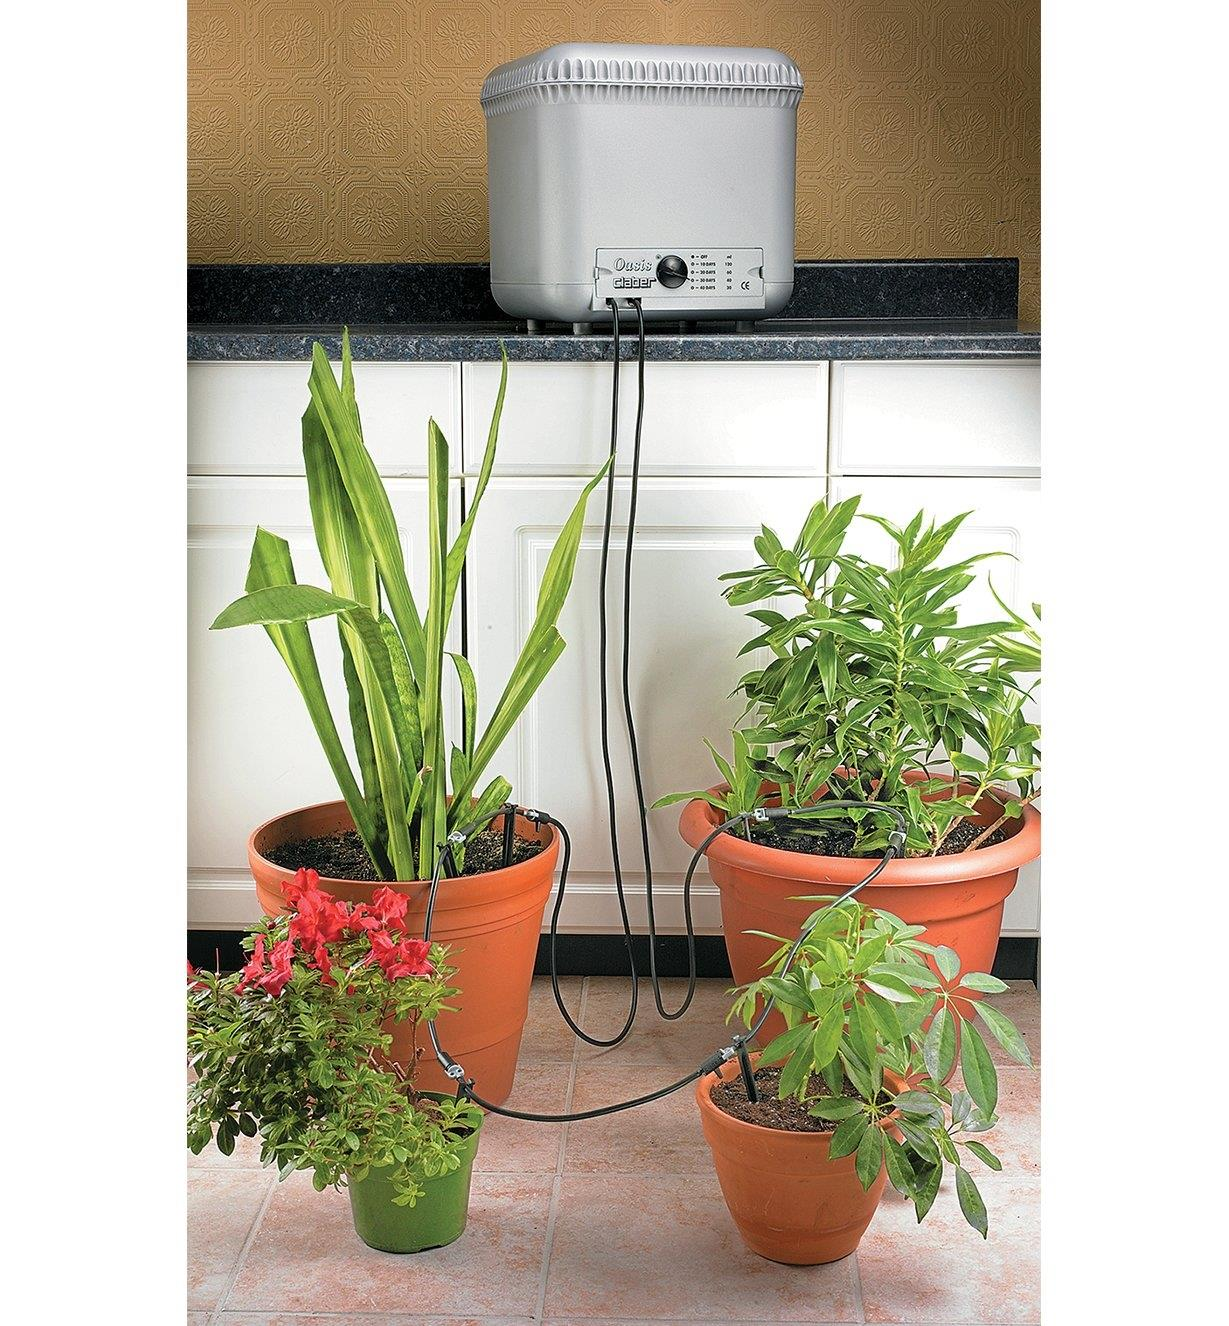 XC550 - Indoor Watering System